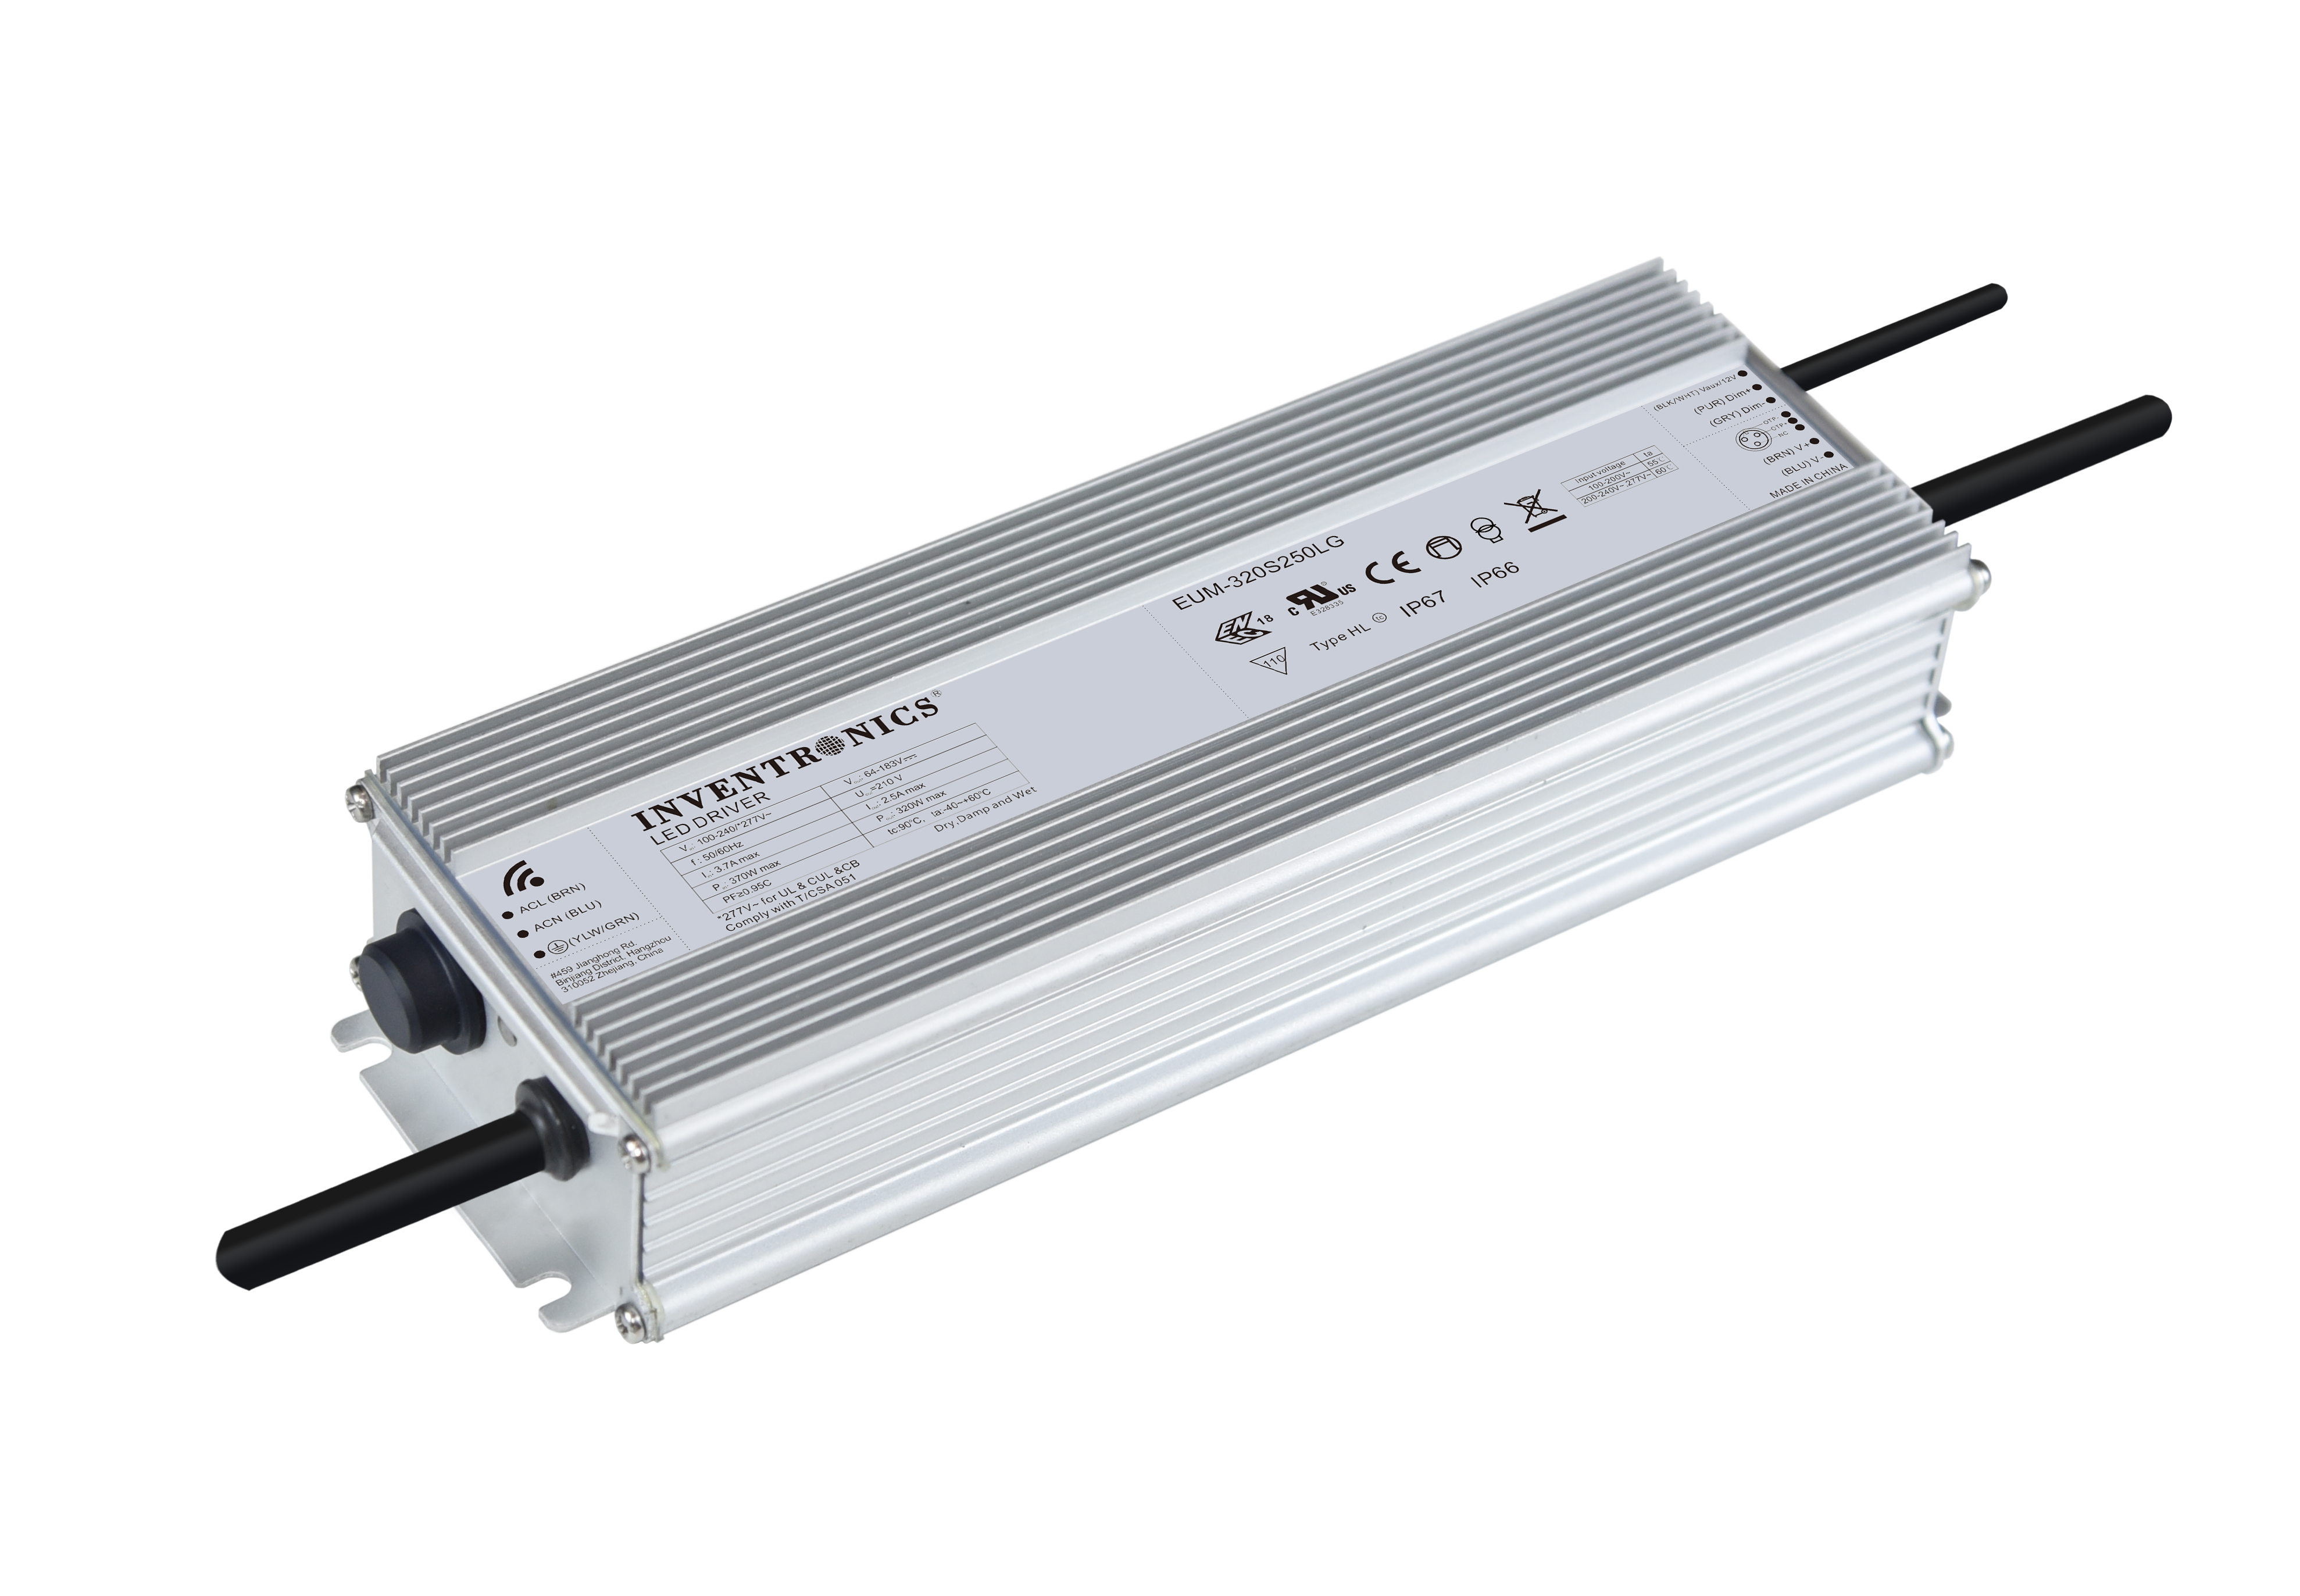 320W LED Drivers with Power Monitoring